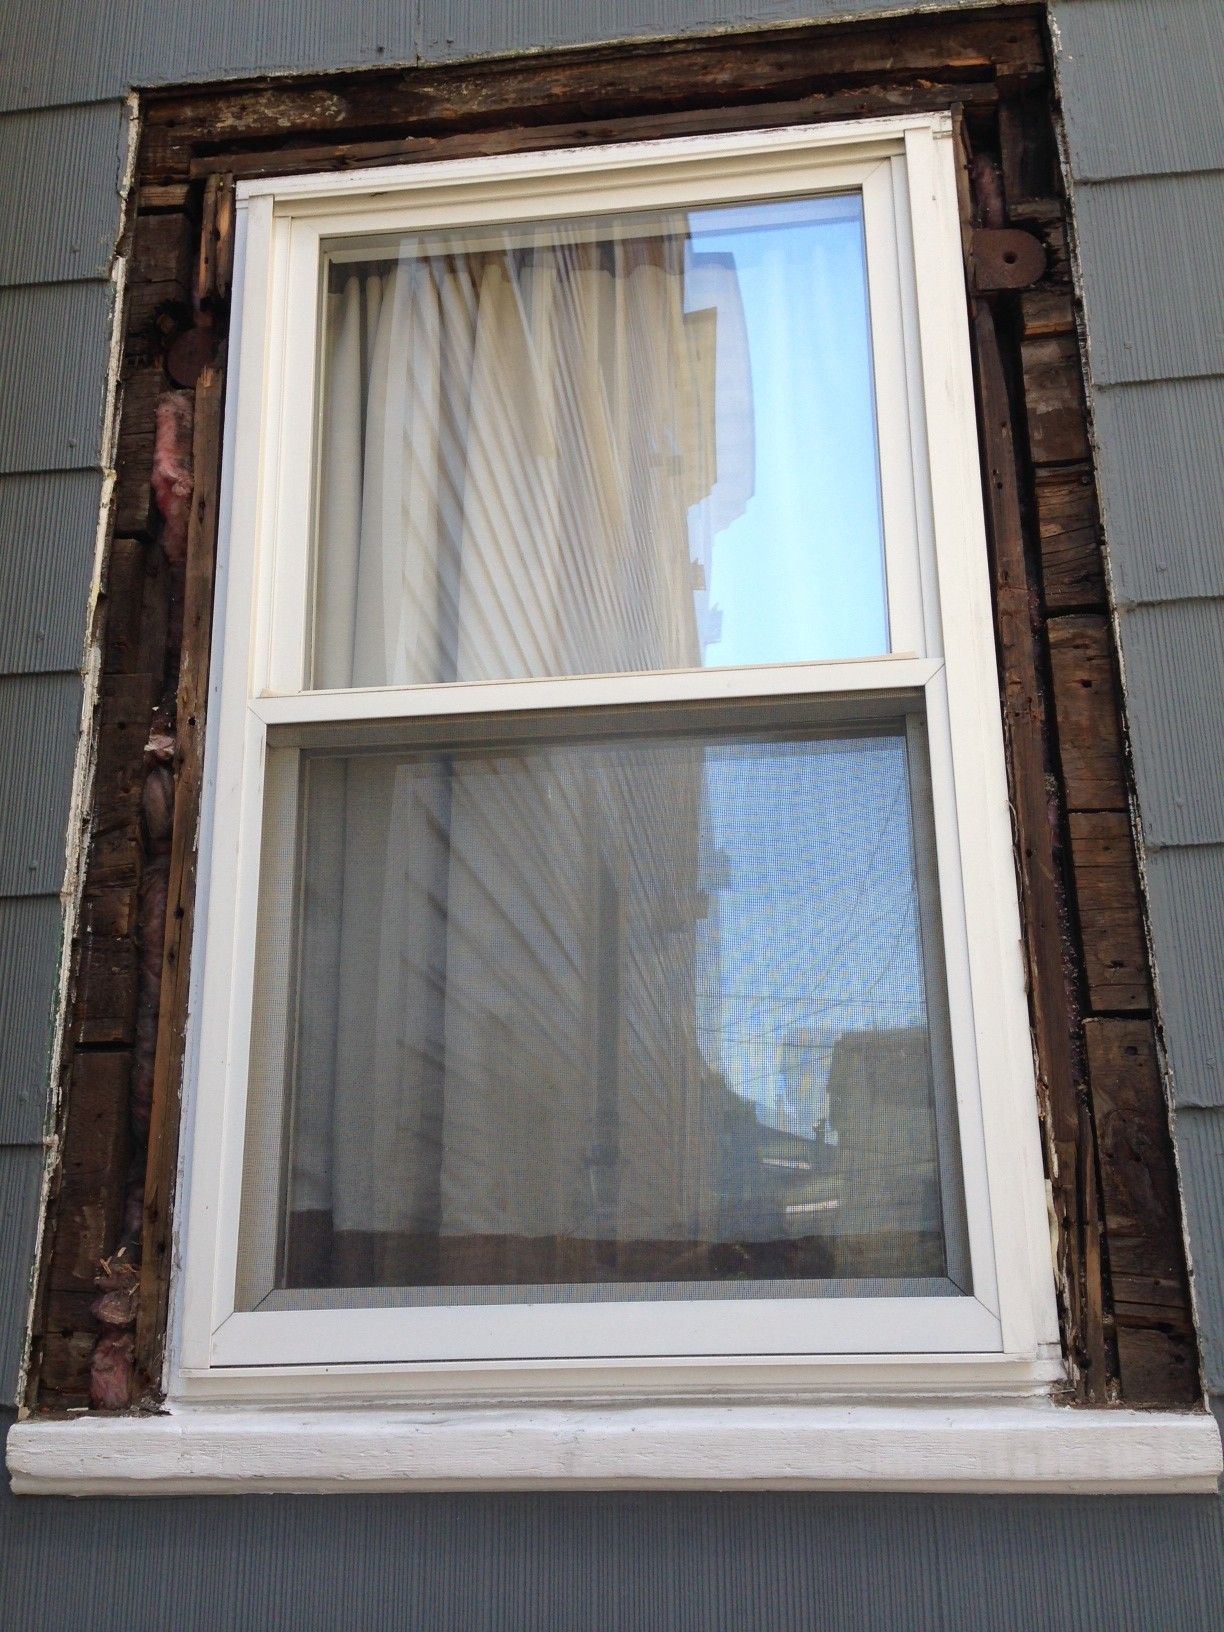 Bathroom Window Molding how to replace exterior window trim - frugalwoods